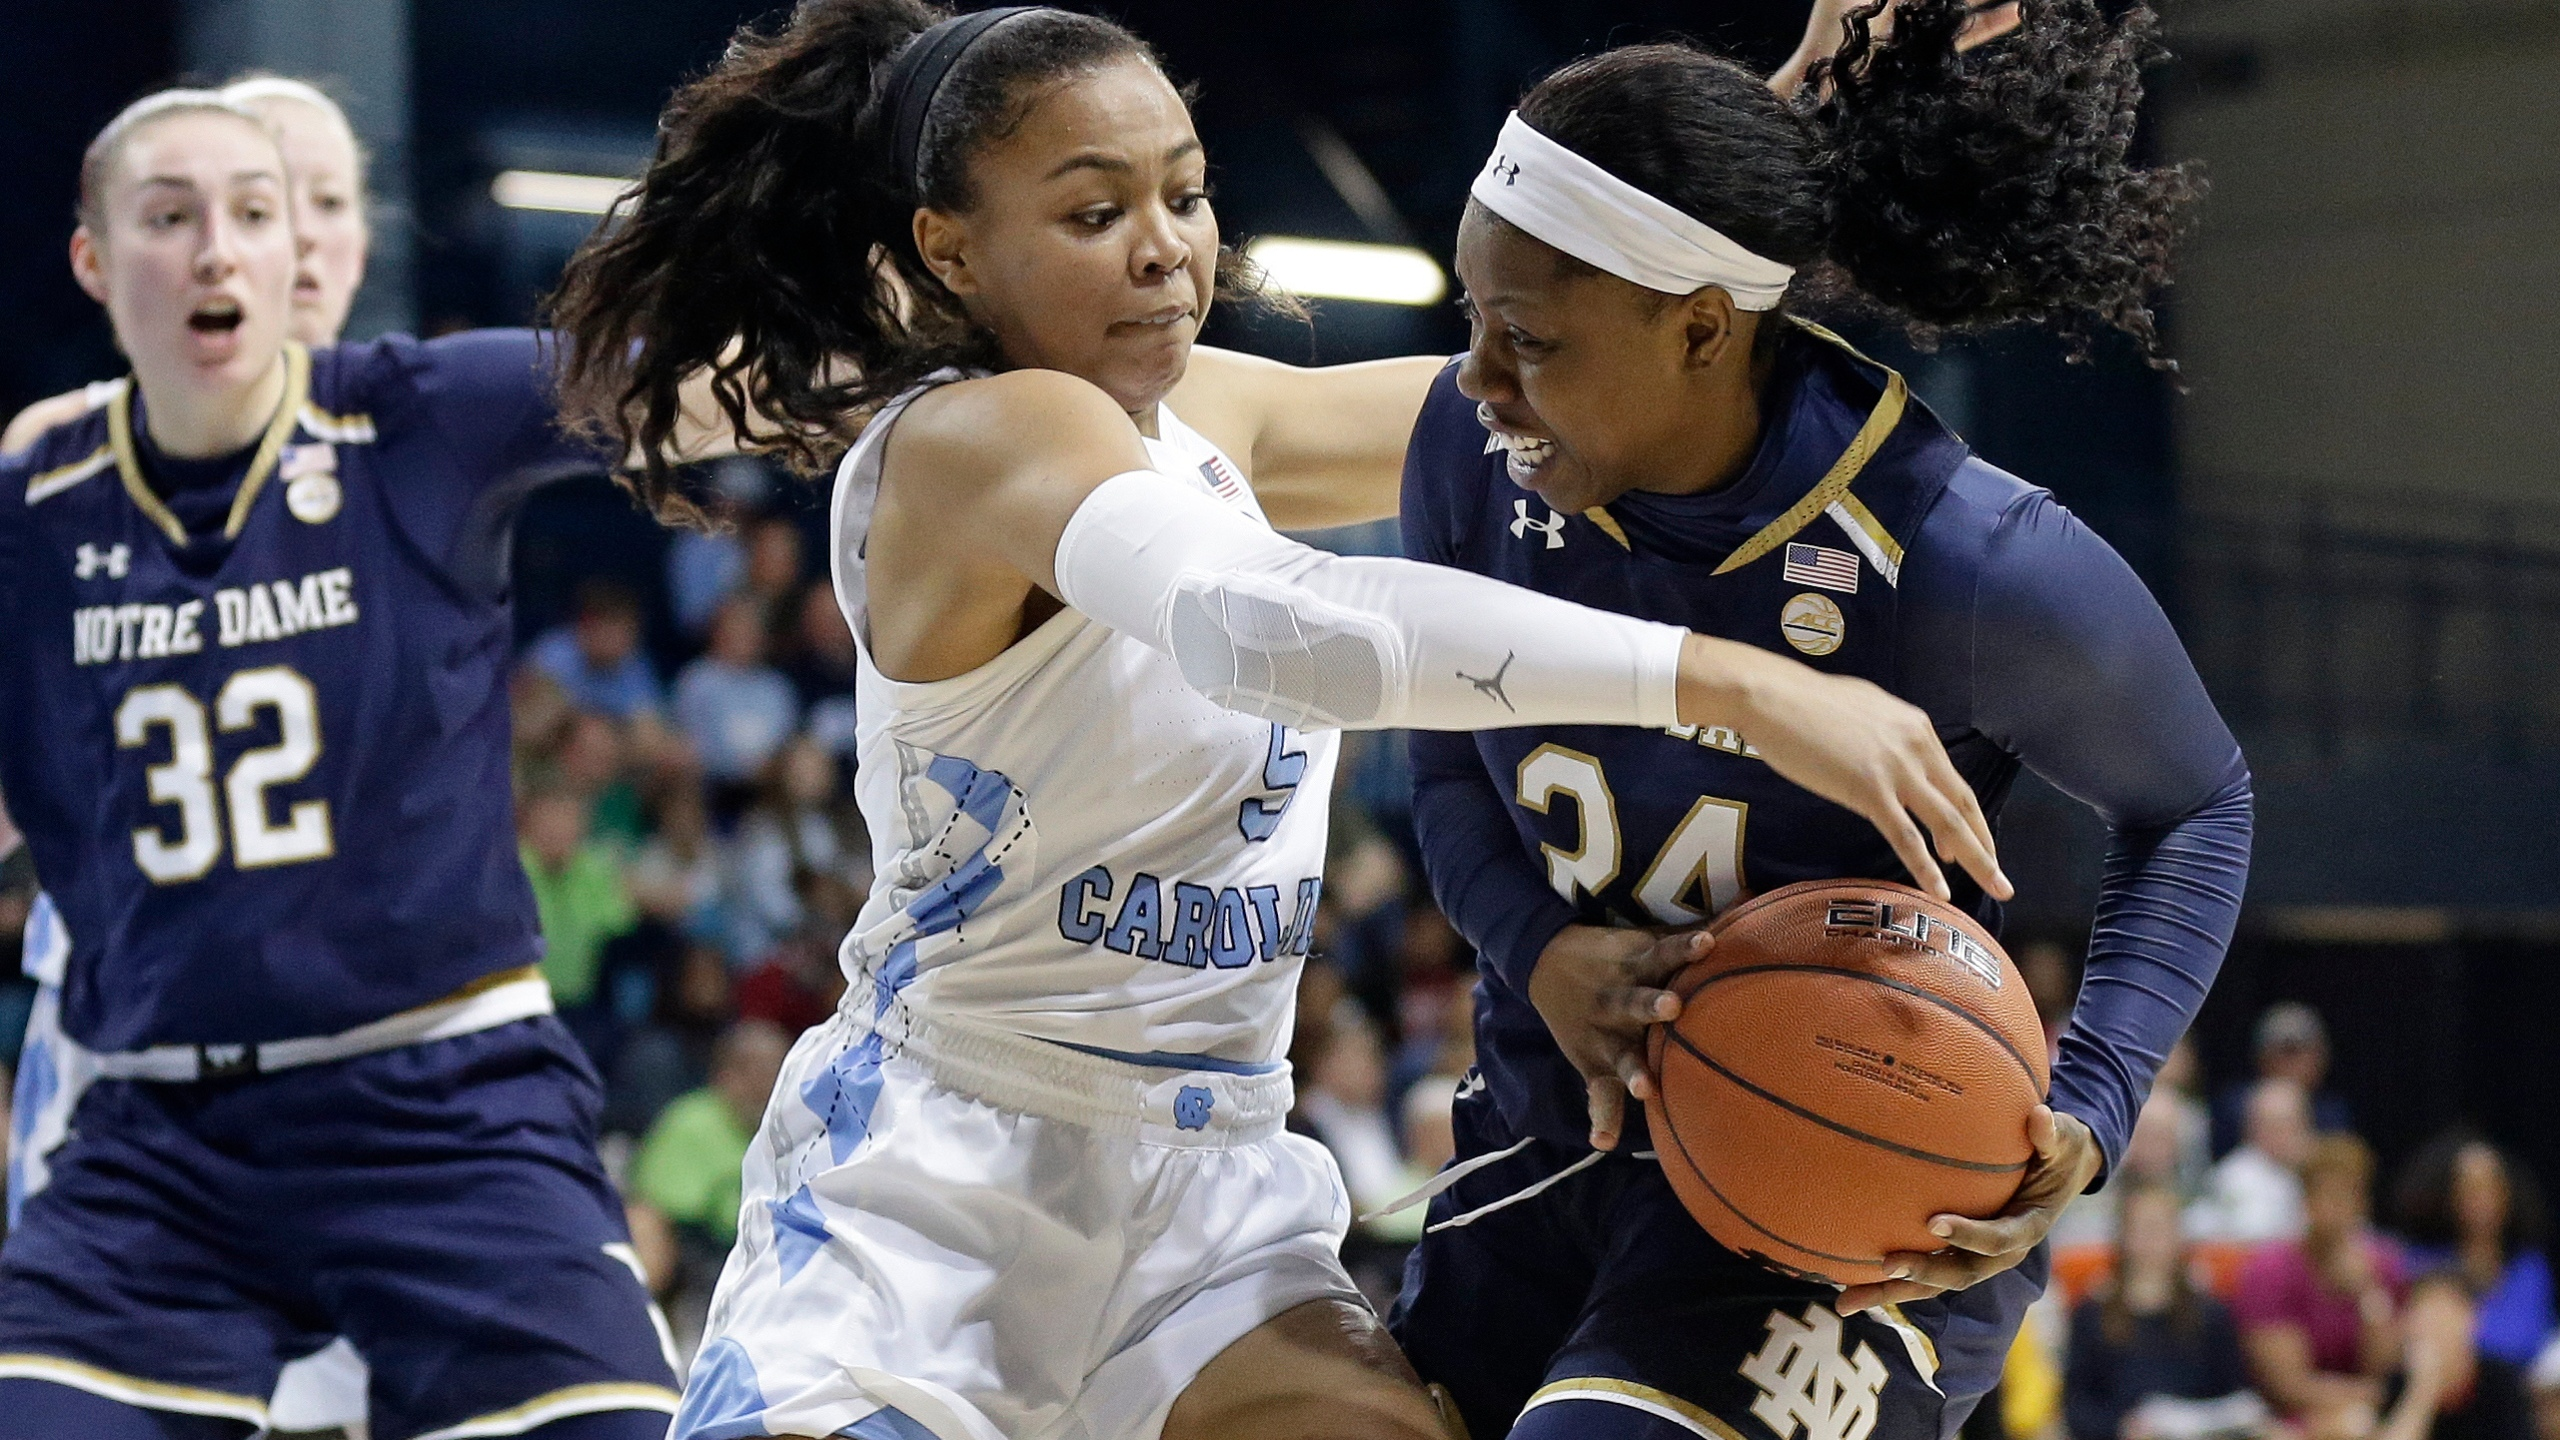 Notre_Dame_North_Carolina_Basketball_80450-159532.jpg13533443